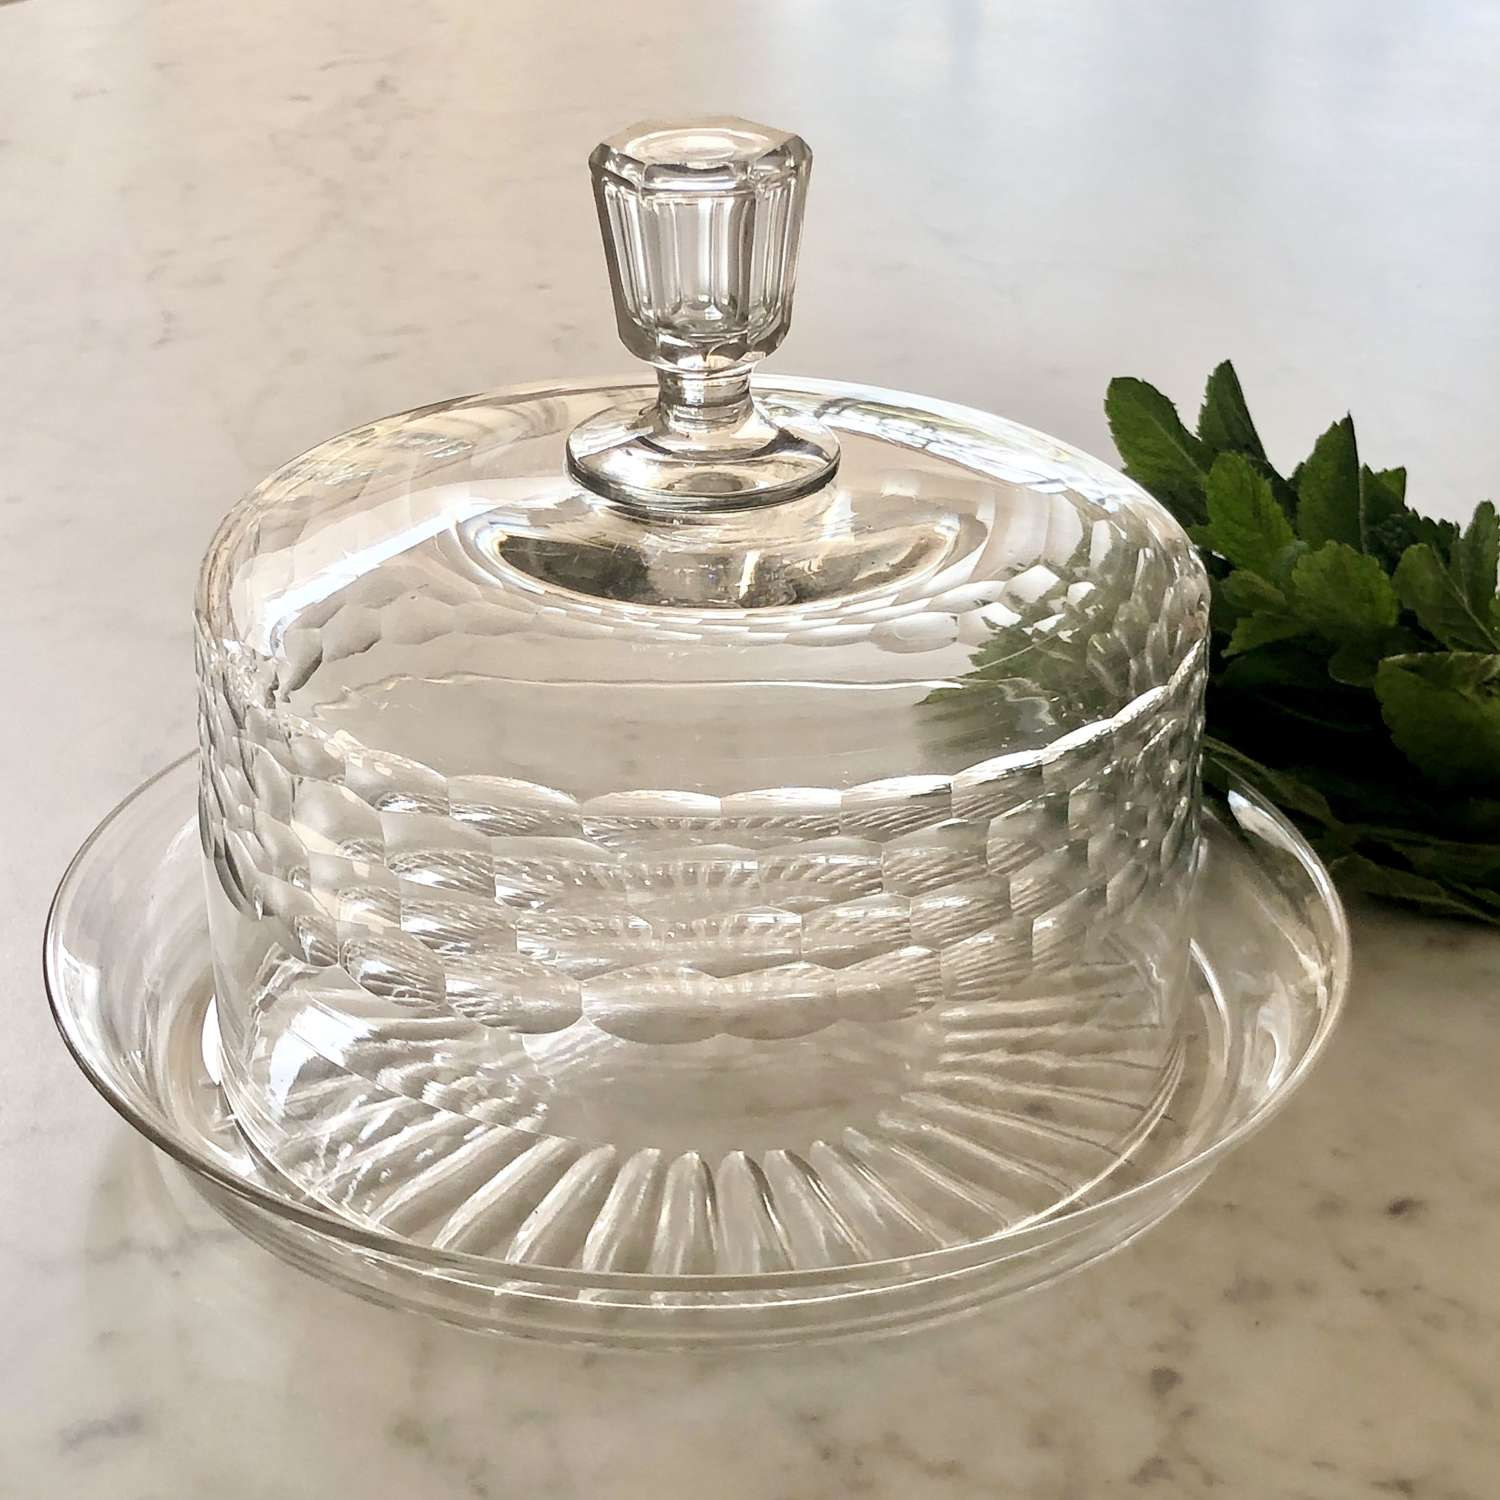 Baccarat crystal serving dome and matching star cut platter